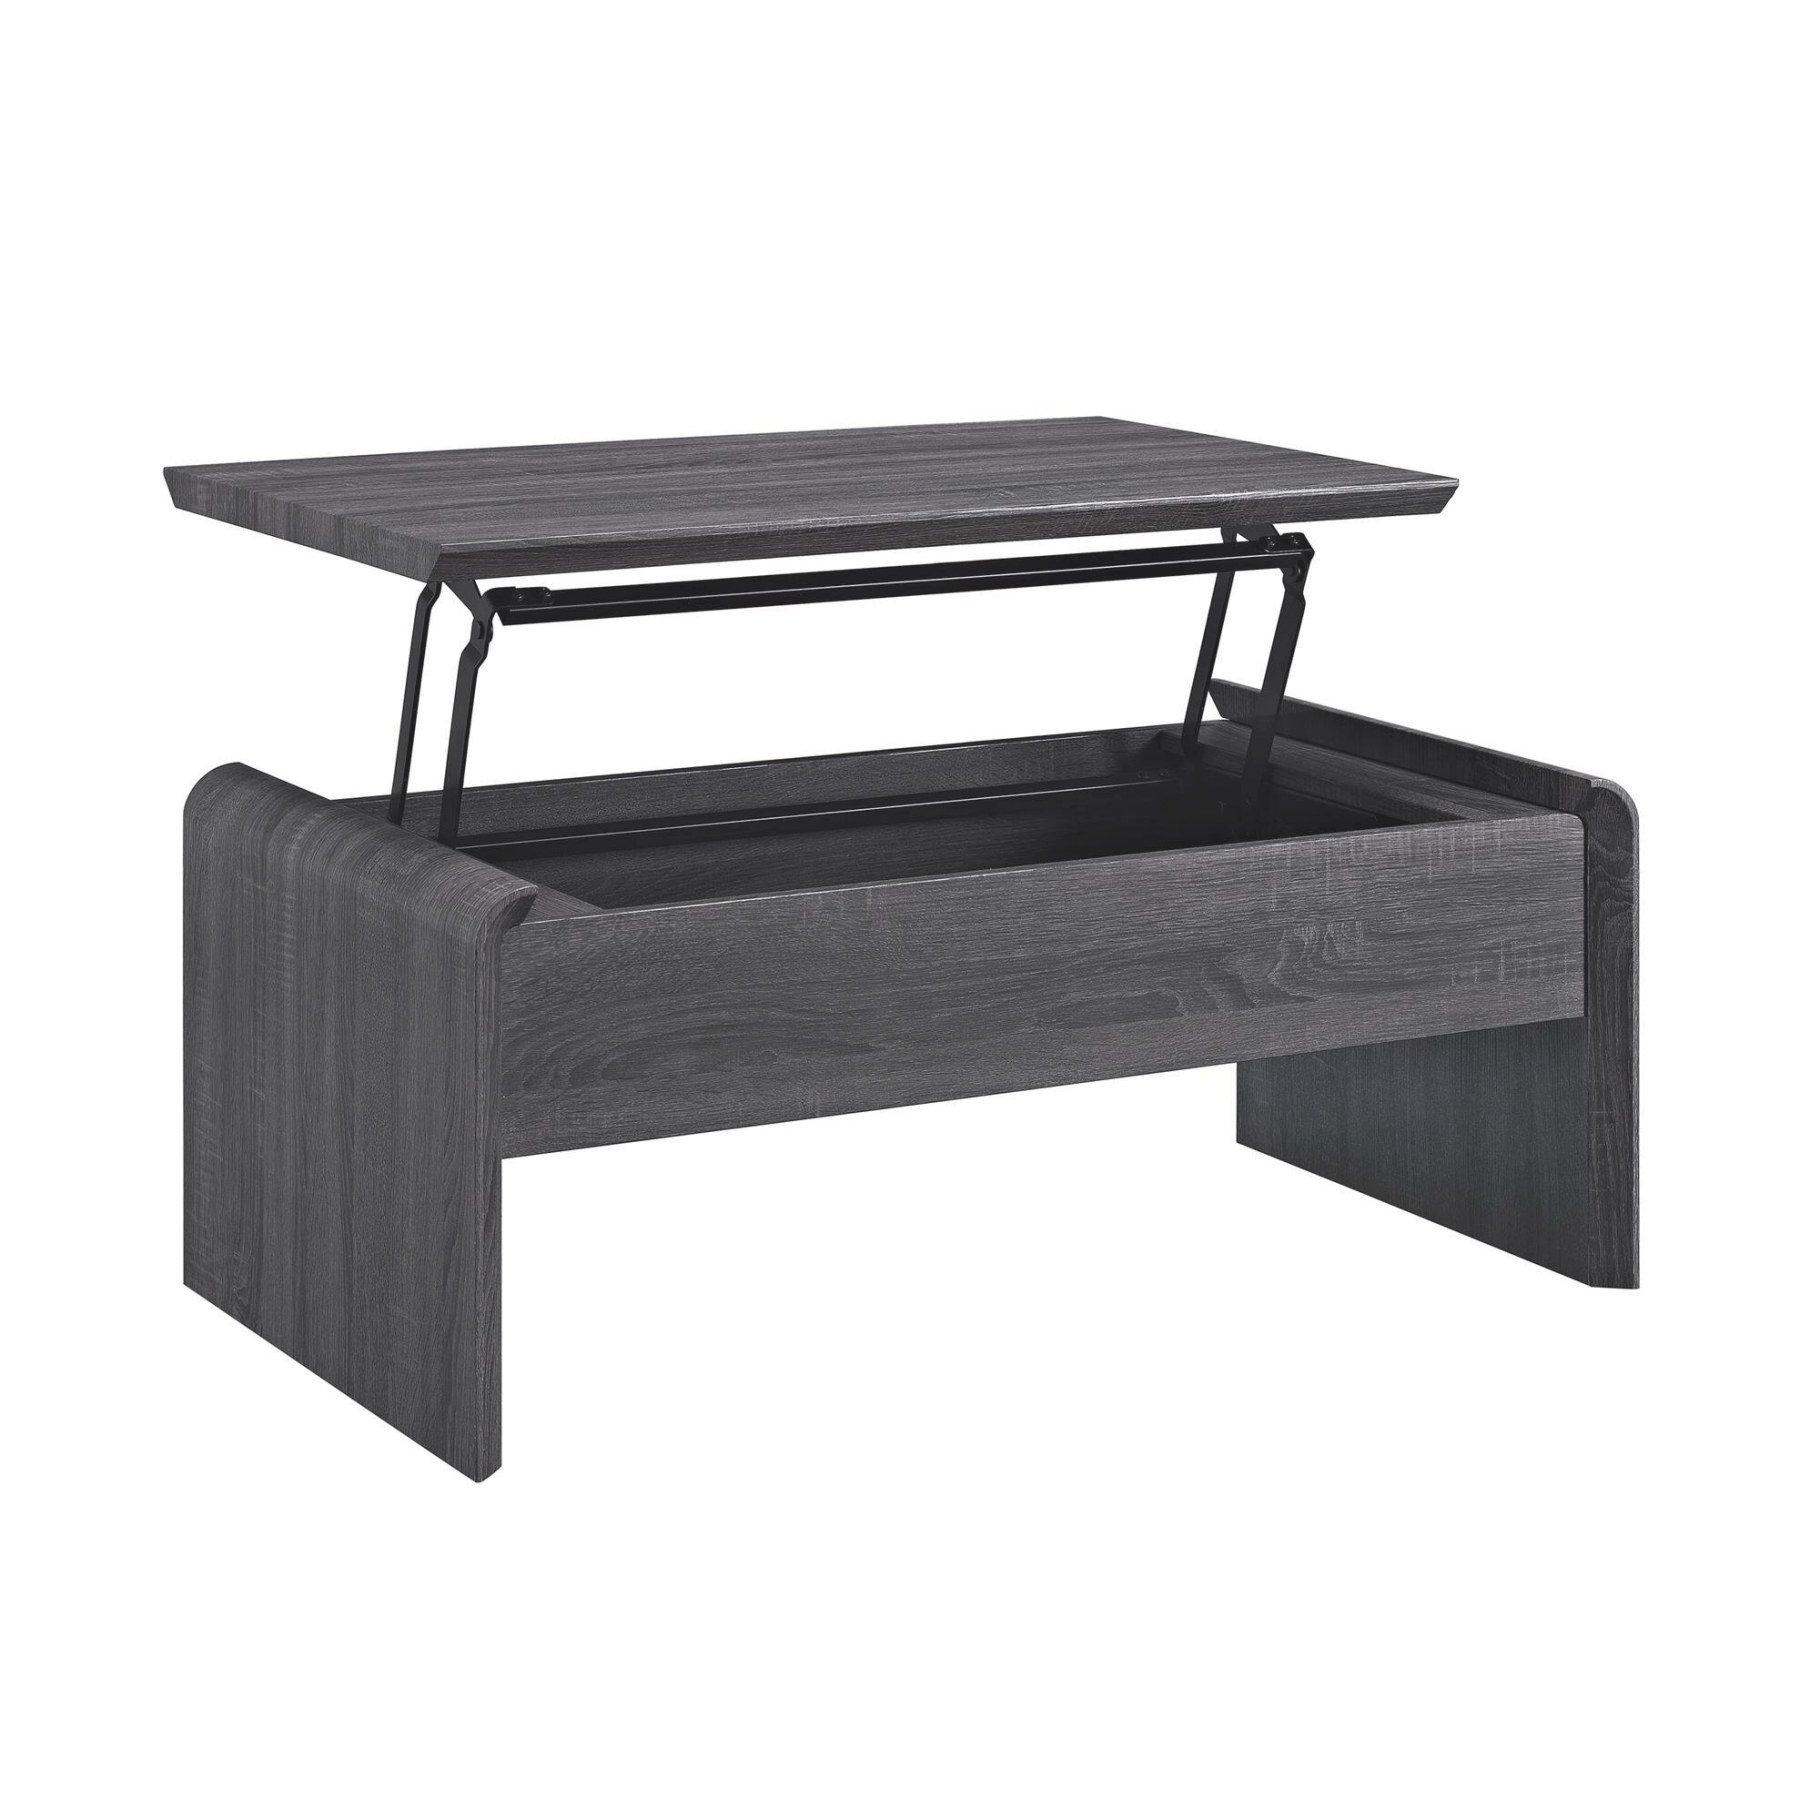 Dorel Living Lift Top Coffee Table & Reviews | Wayfair intended for Lift Top Coffee Tables